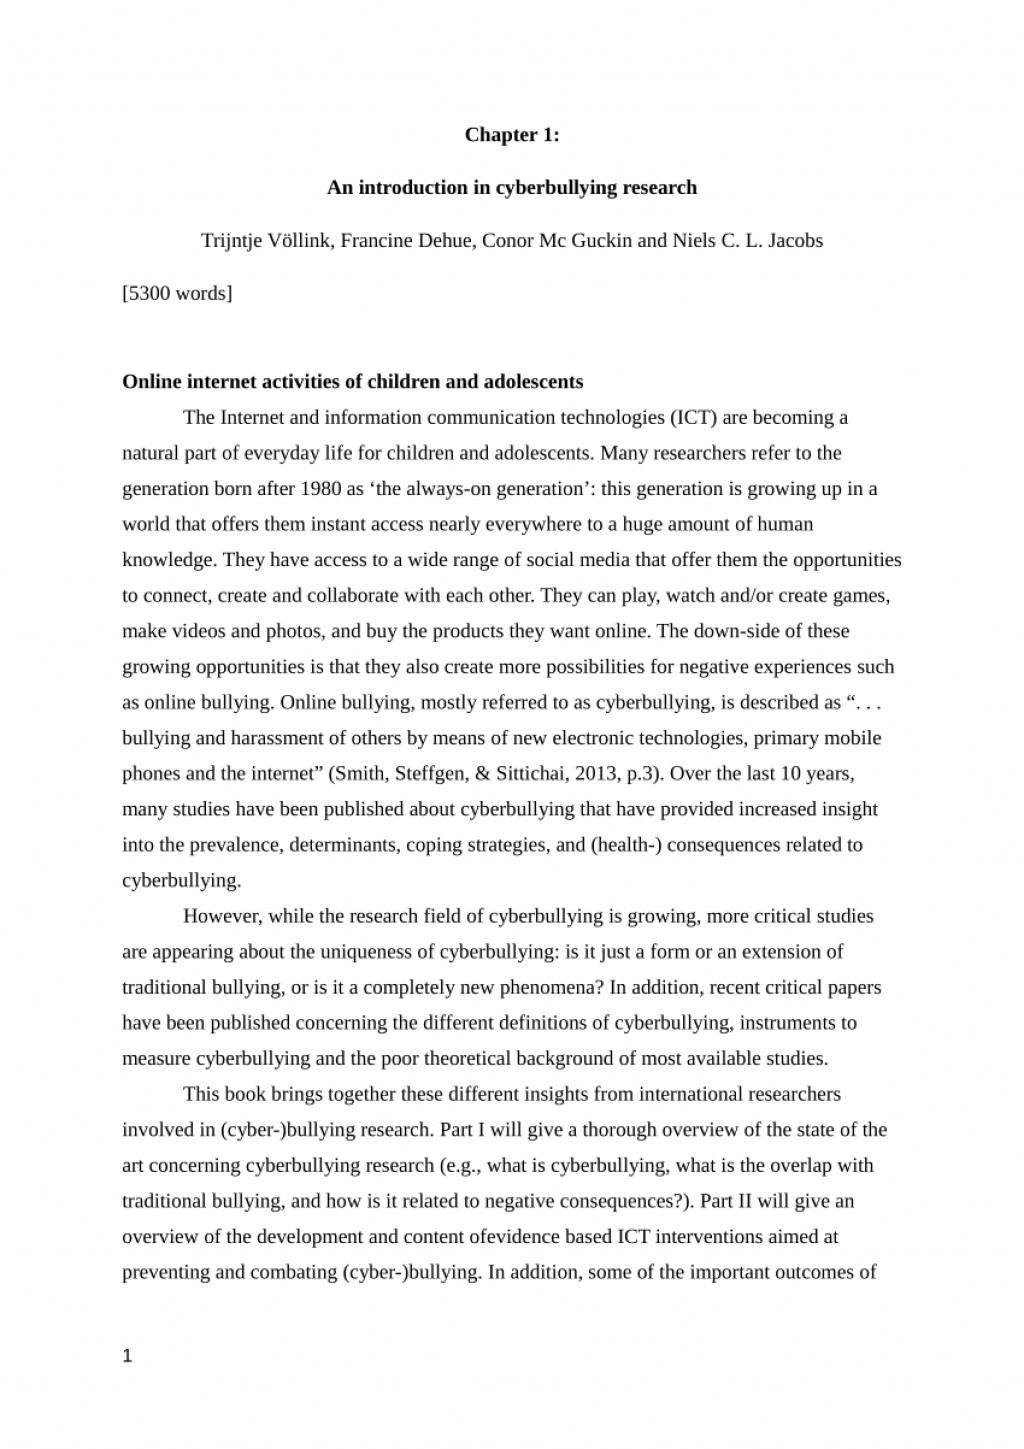 001 Research Paper Largepreview Cyber Phenomenal Bullying Cyberbullying Chapter 1 Pdf Large